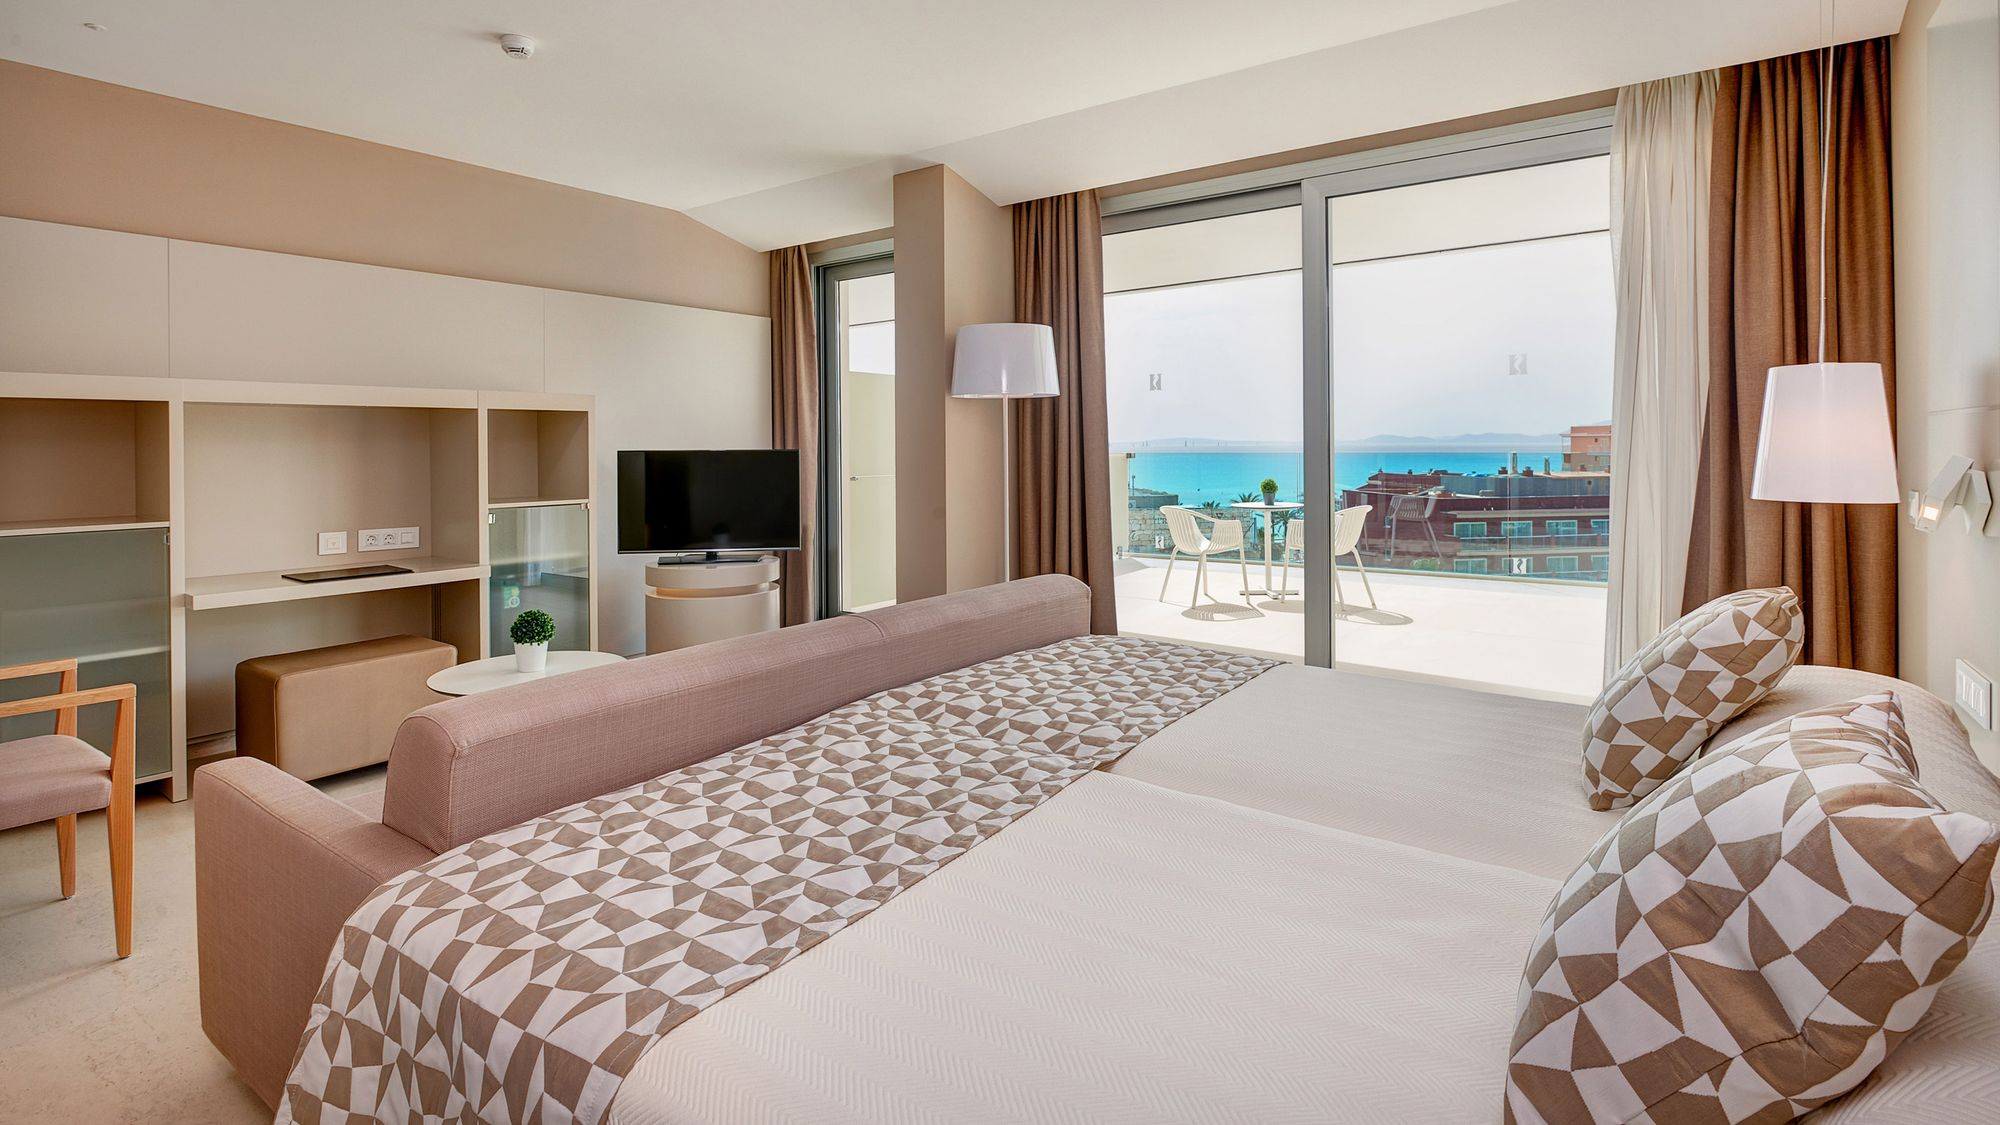 Zimmer des hotels hipotels gran playa de palma mallorca for Hotels in warnemunde mit meerblick